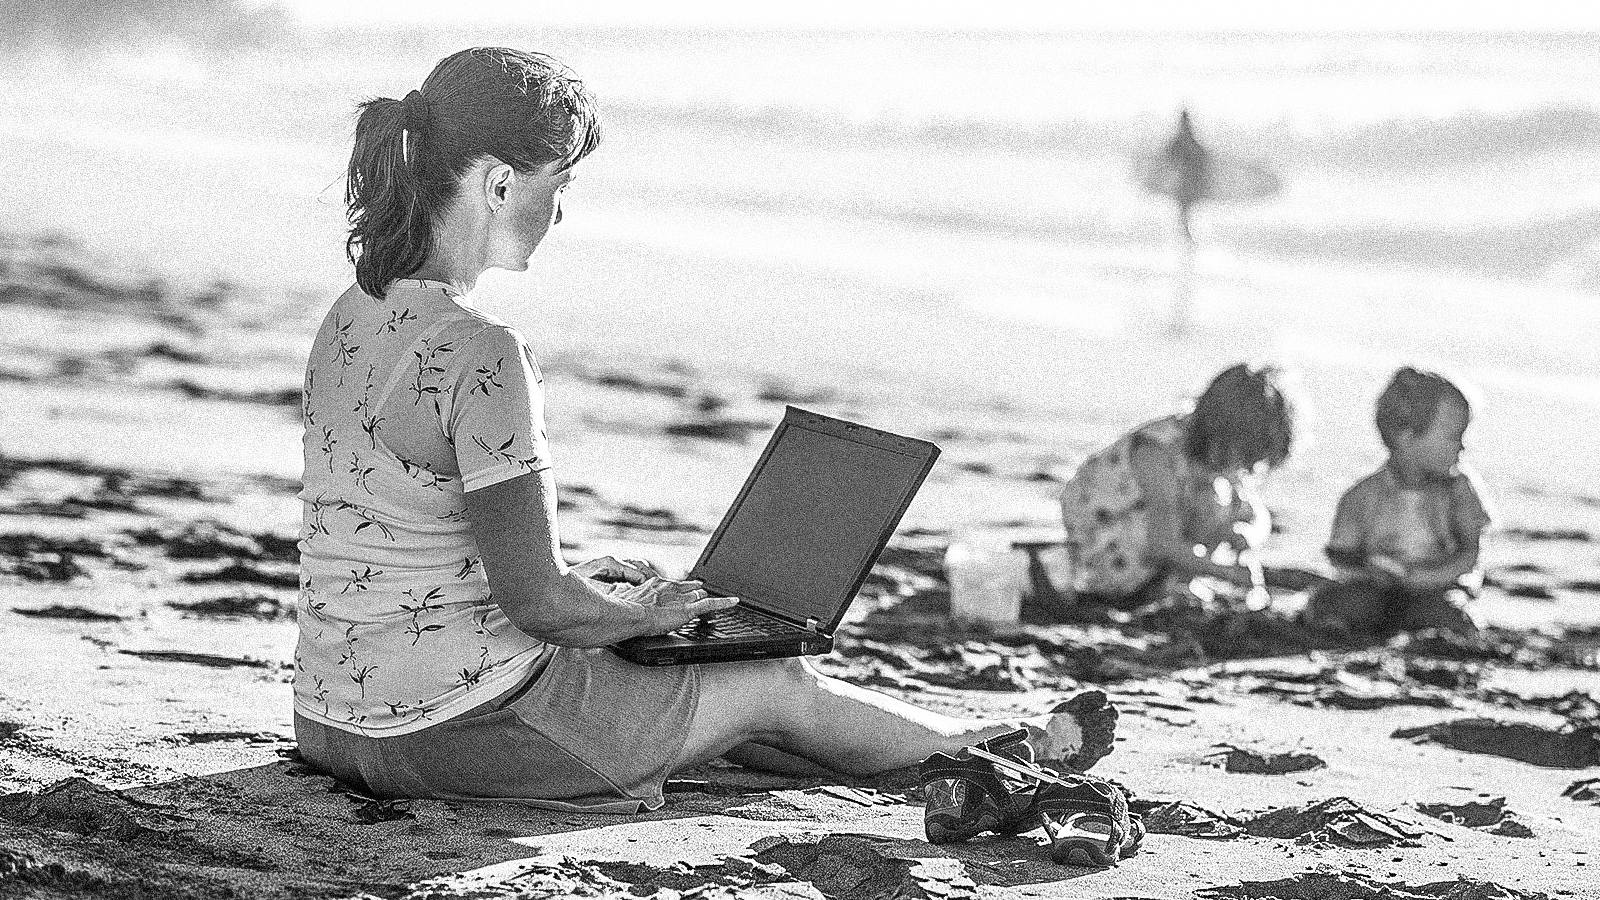 One-third of us work during vacation to enjoy vacation | Ladders